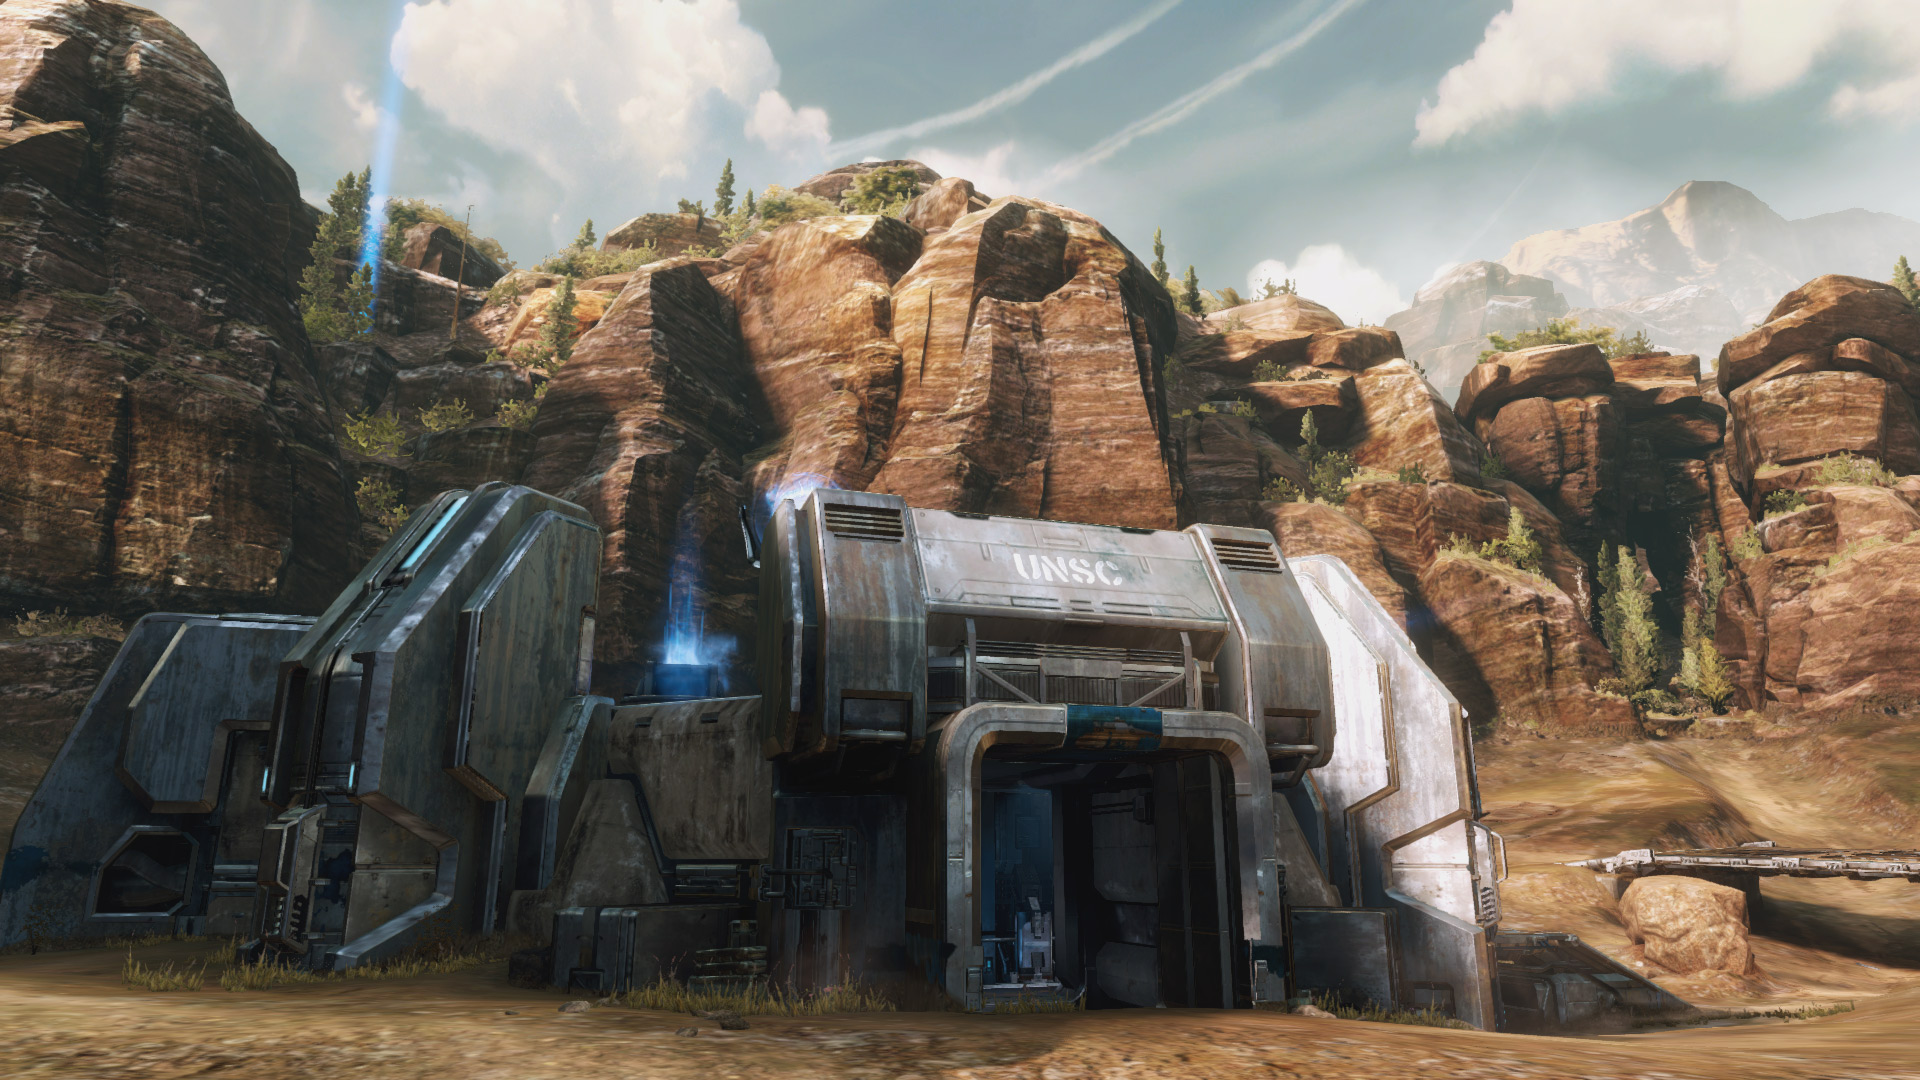 Cross-play between console and PC still being considered The post Halo: